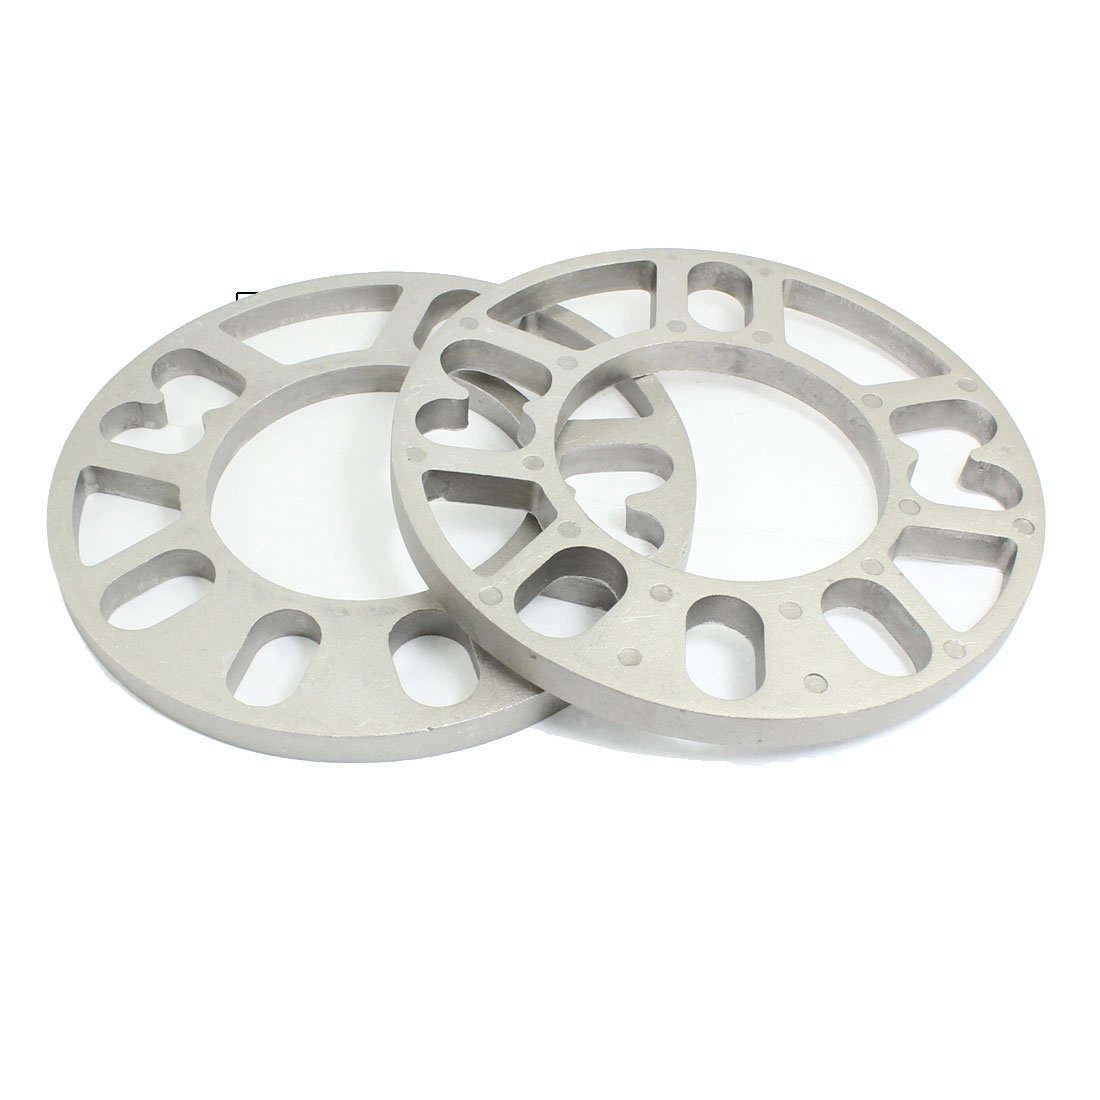 2PCS Aluminum Alloy 4 and 5 Lug 10mm Thickness Wheel Spacer for Car